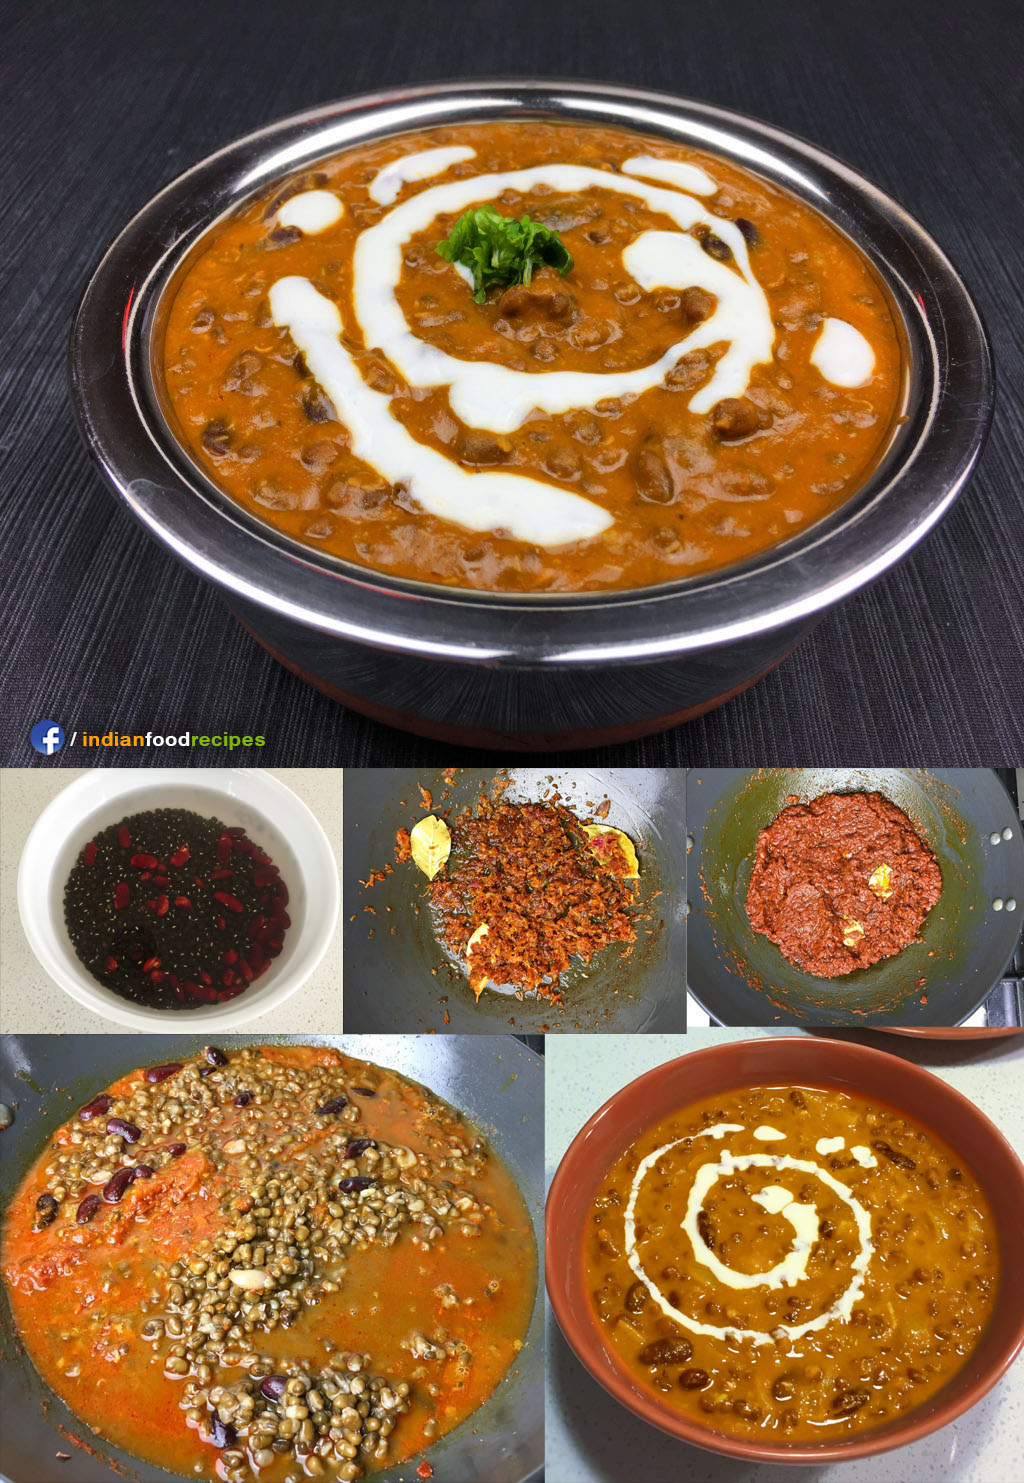 Dal makhani recipe step by step pictures indian food recipes dal makhani recipe step by step pictures forumfinder Image collections